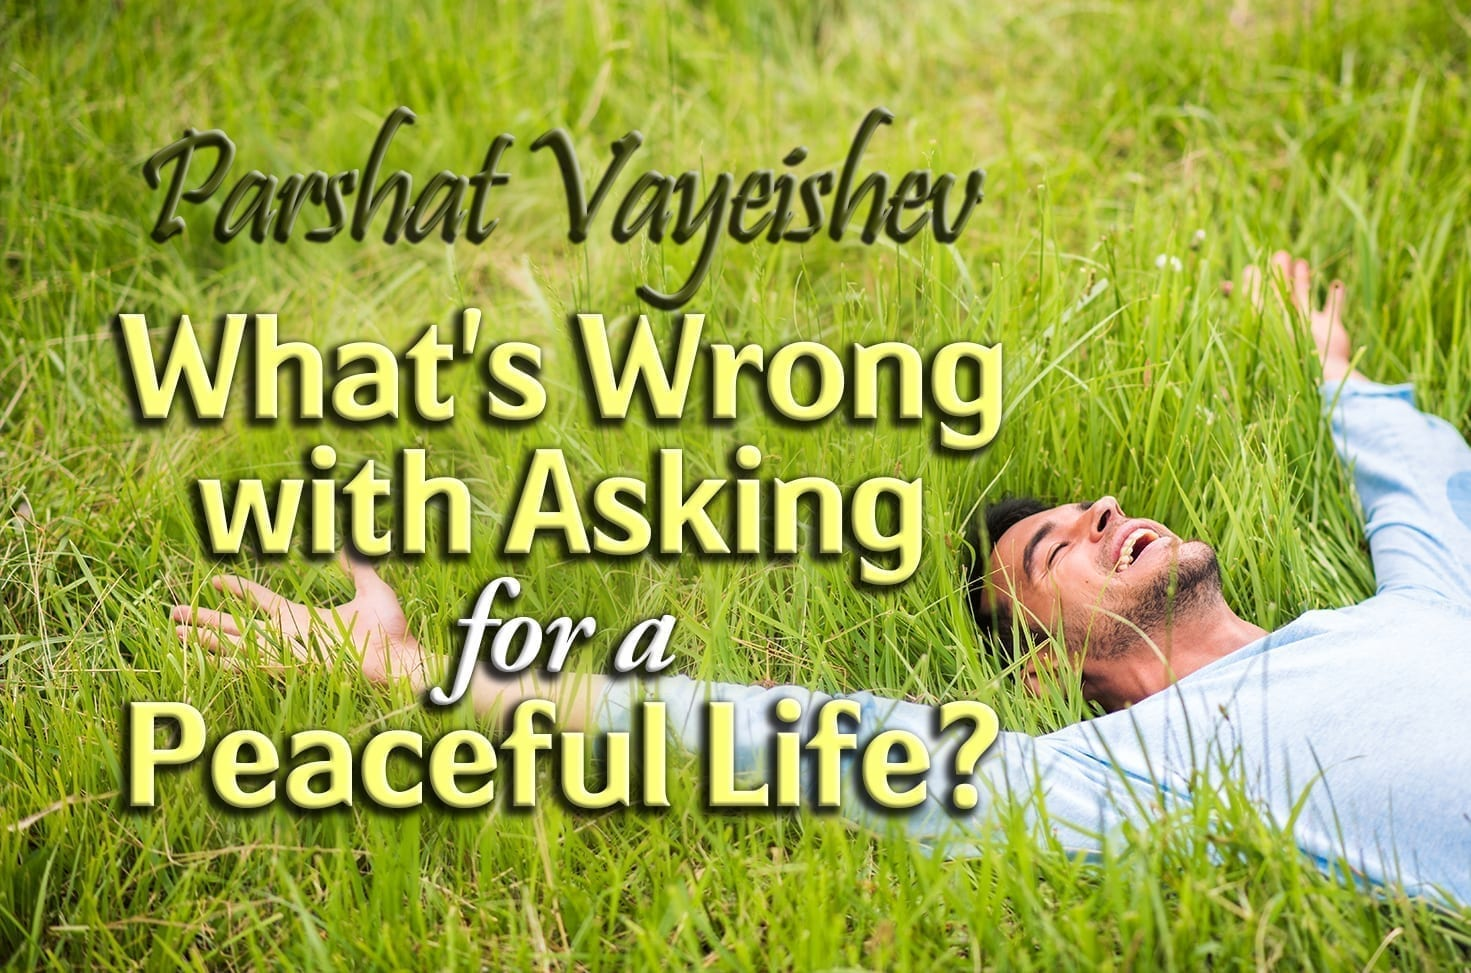 Photo of Parshat Vayeishev – What's Wrong with Asking for a Peaceful Life